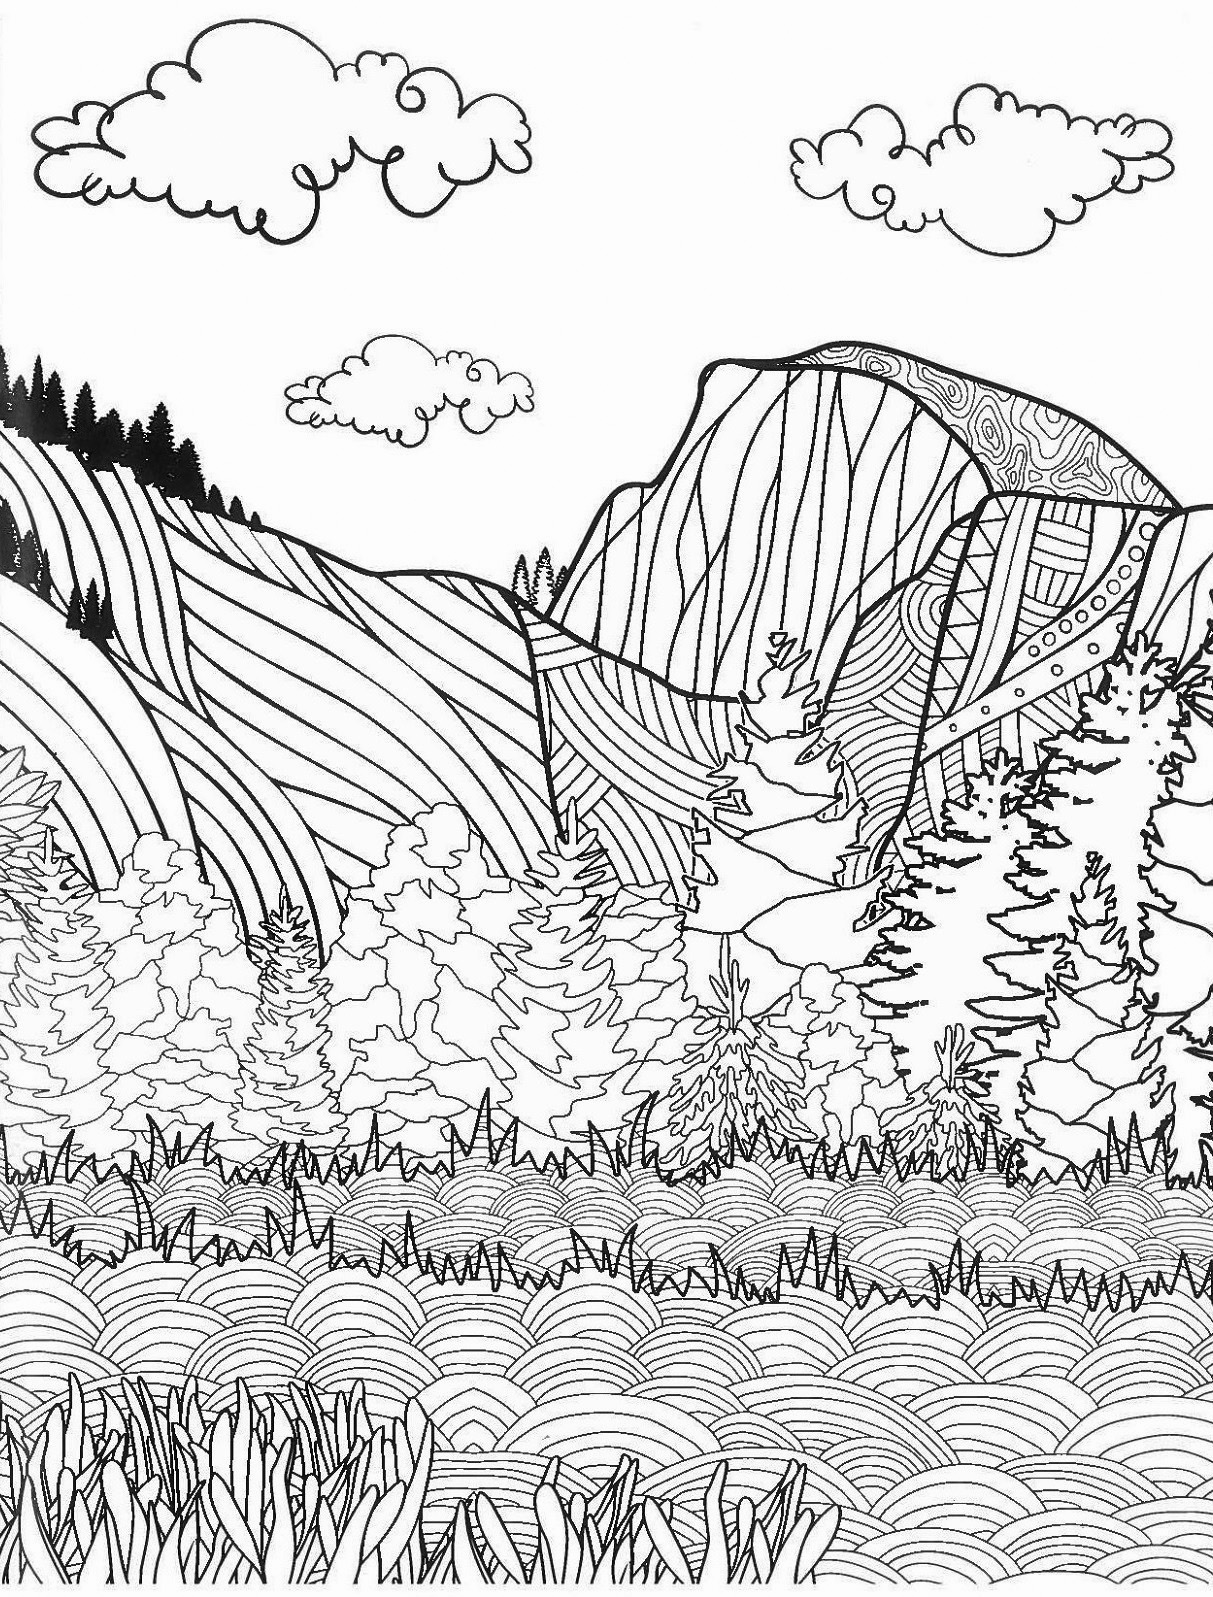 Yosemite Zen Coloring Book Yosemite Online Store Official